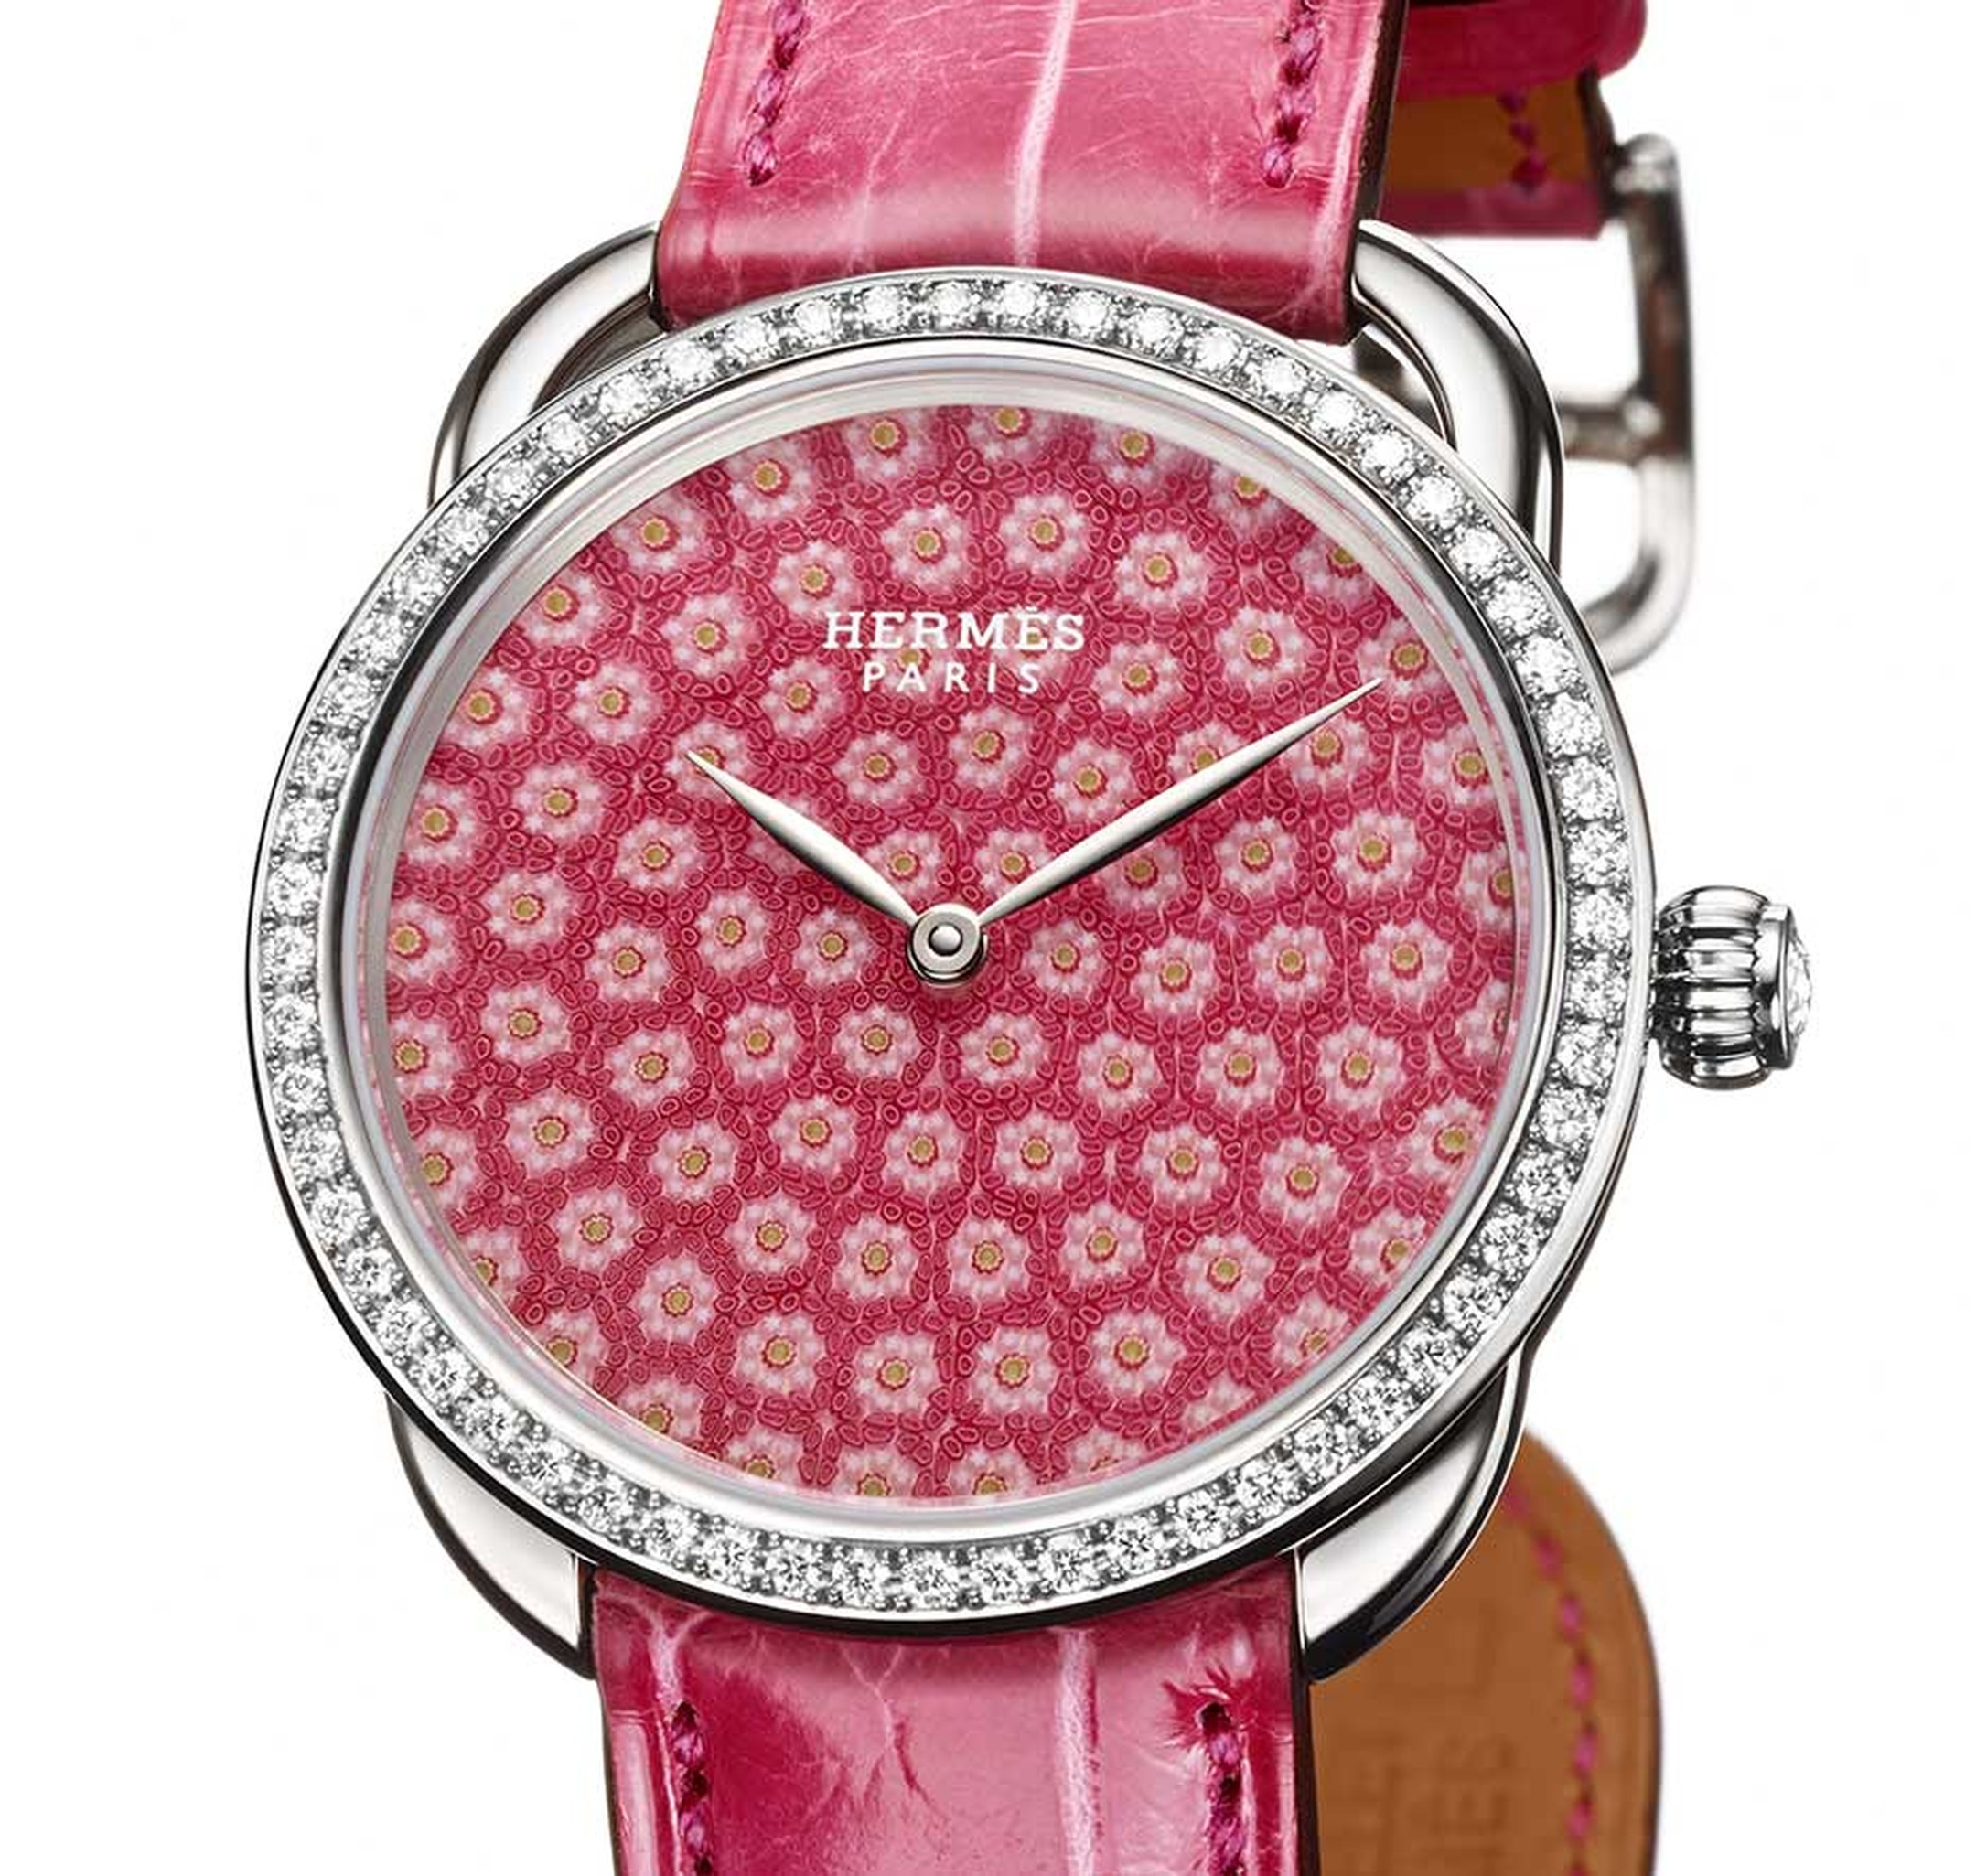 Hermès Arceau Millefiori watch in raspberry pink.